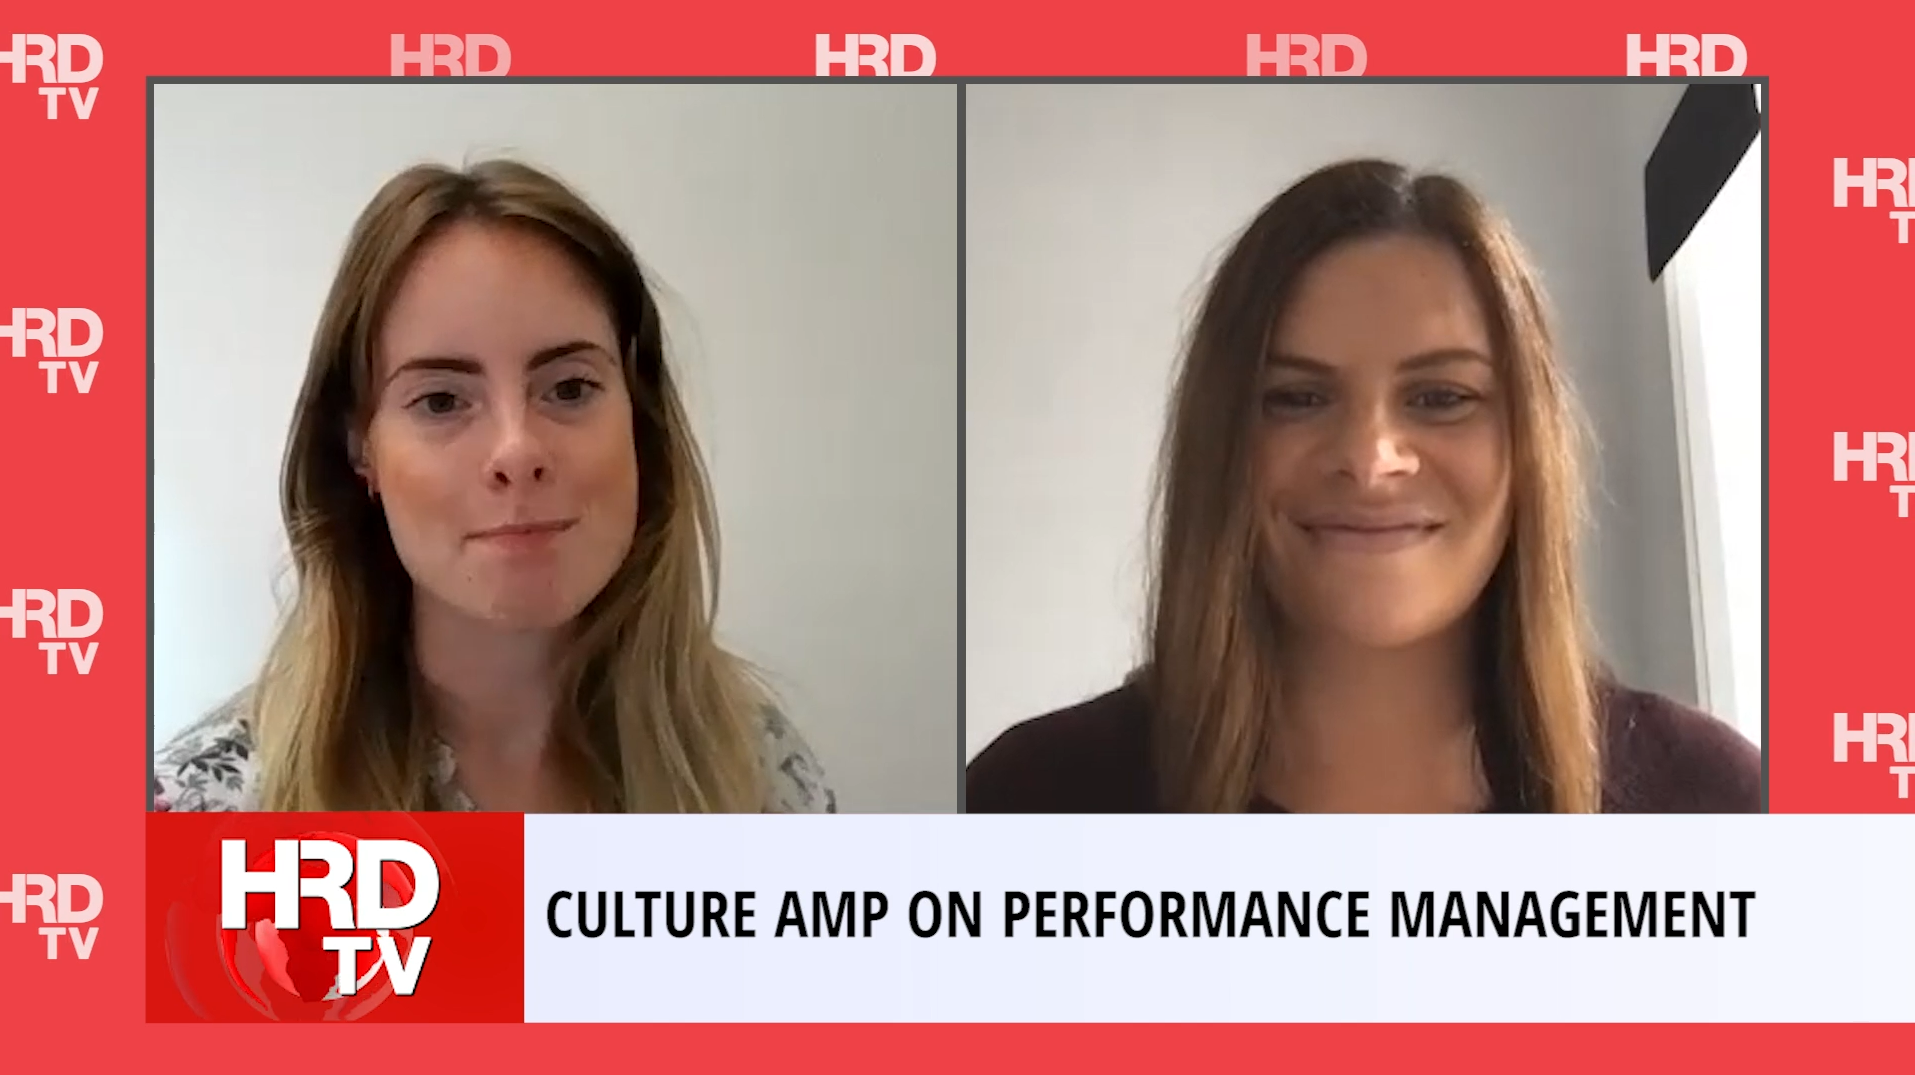 Culture Amp on Performance Management